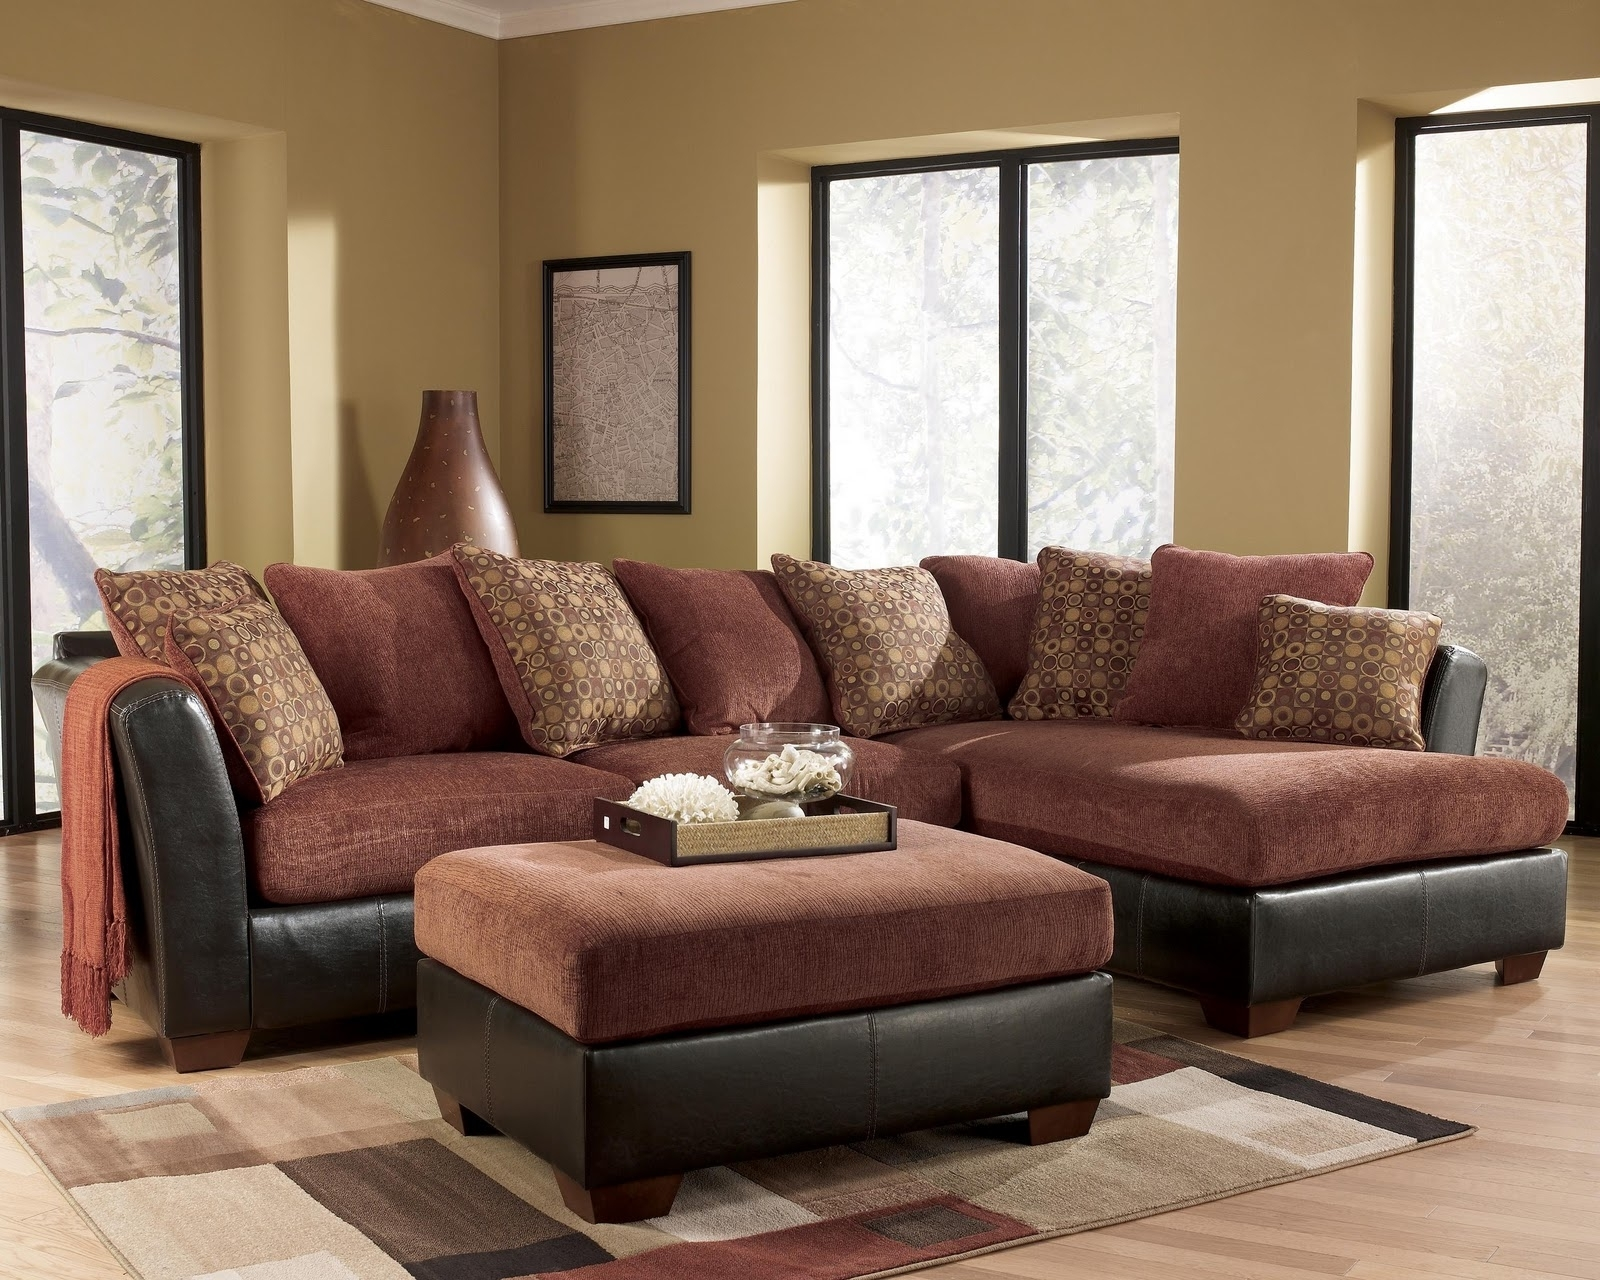 Ashley Furniture Sectional Sofas (View 3 of 15)